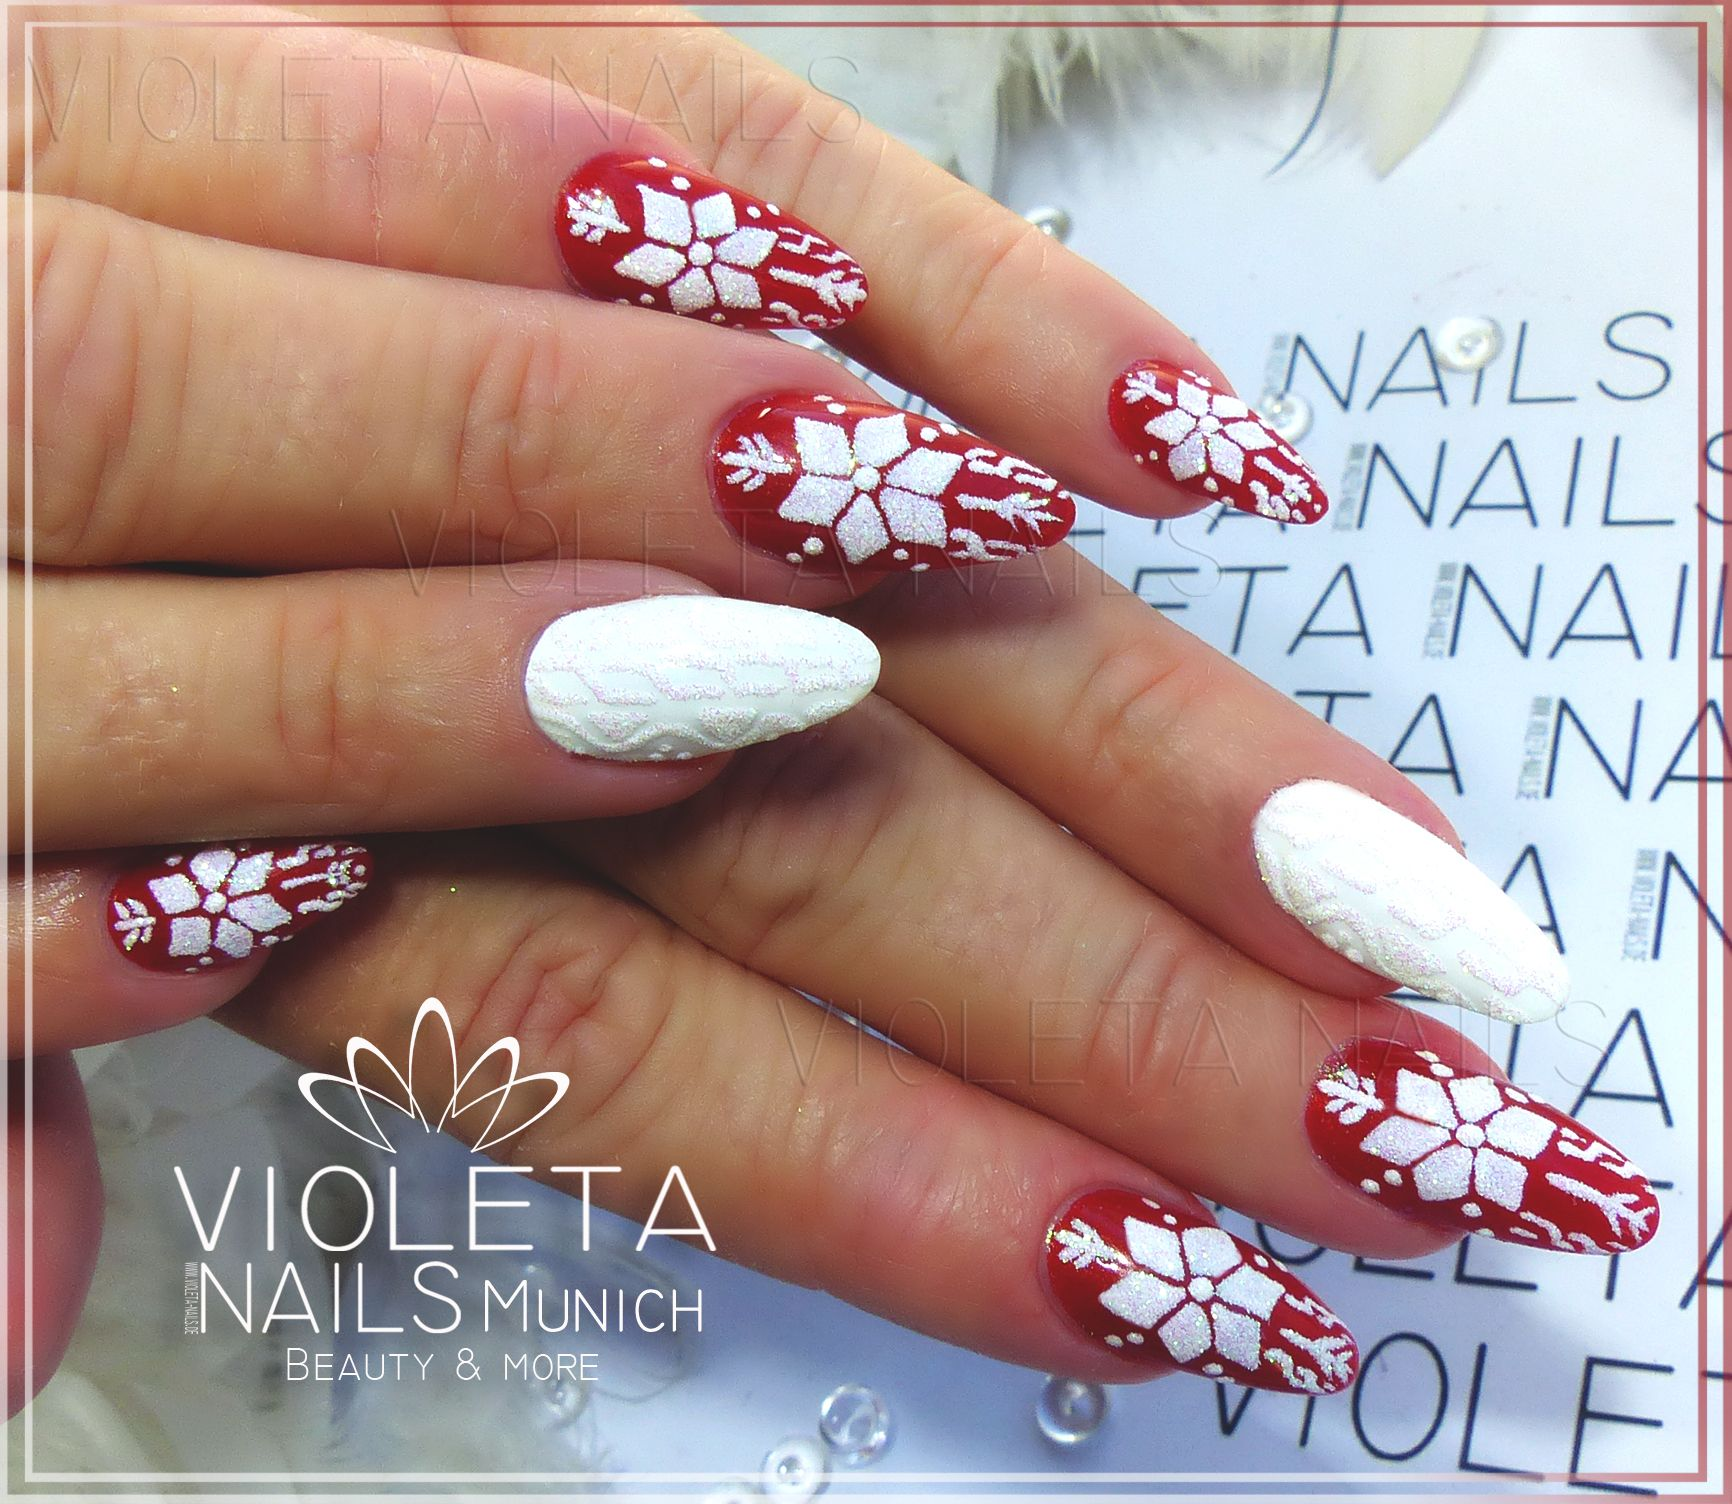 Nailart and Nail-Designs for you. Lovely Nails and beautiful hands ...